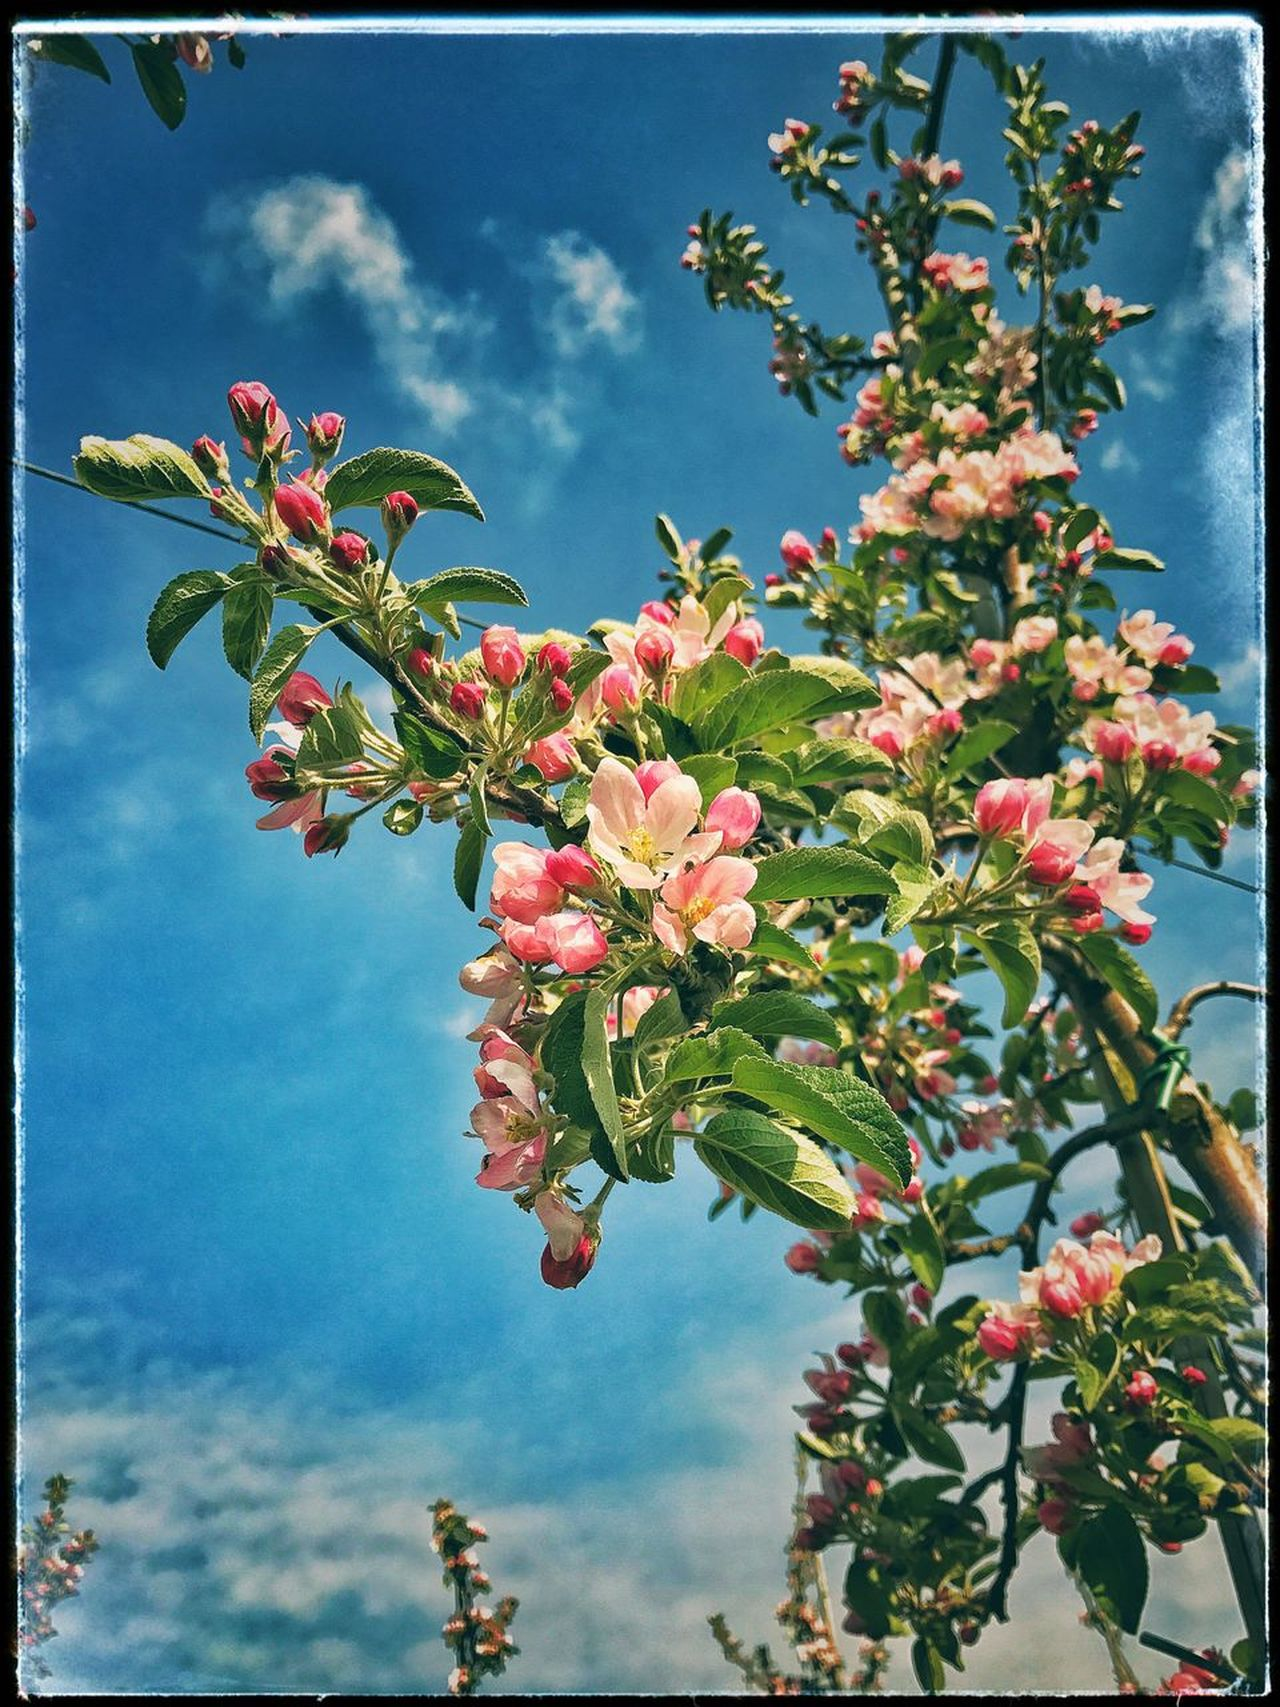 Apple Blossom Beauty In Nature Makes Me Happy